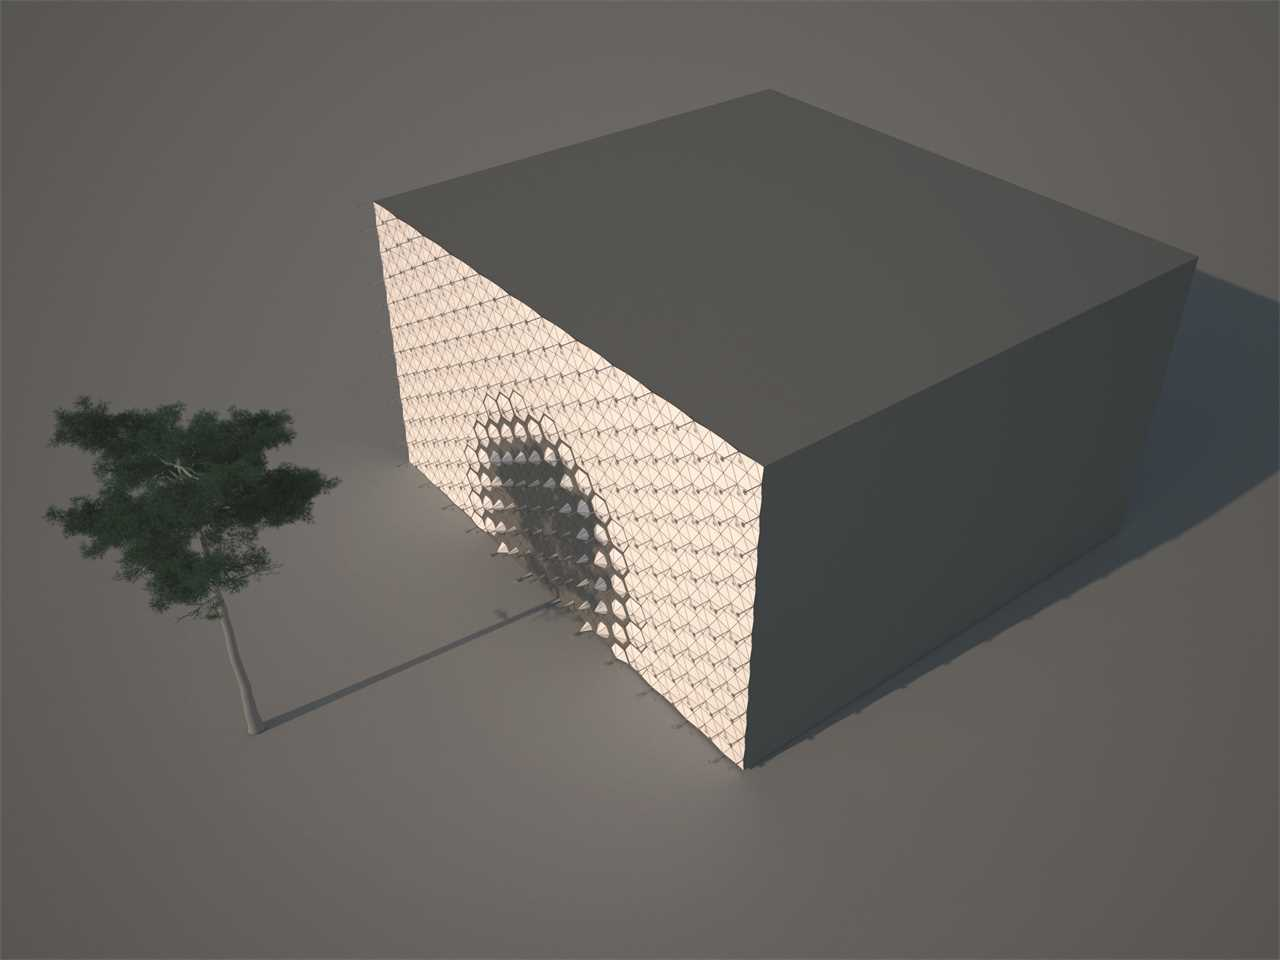 Project entry 2014 Europe – Air-Shade: Responsive sustainable shading system, Vienna, Austria